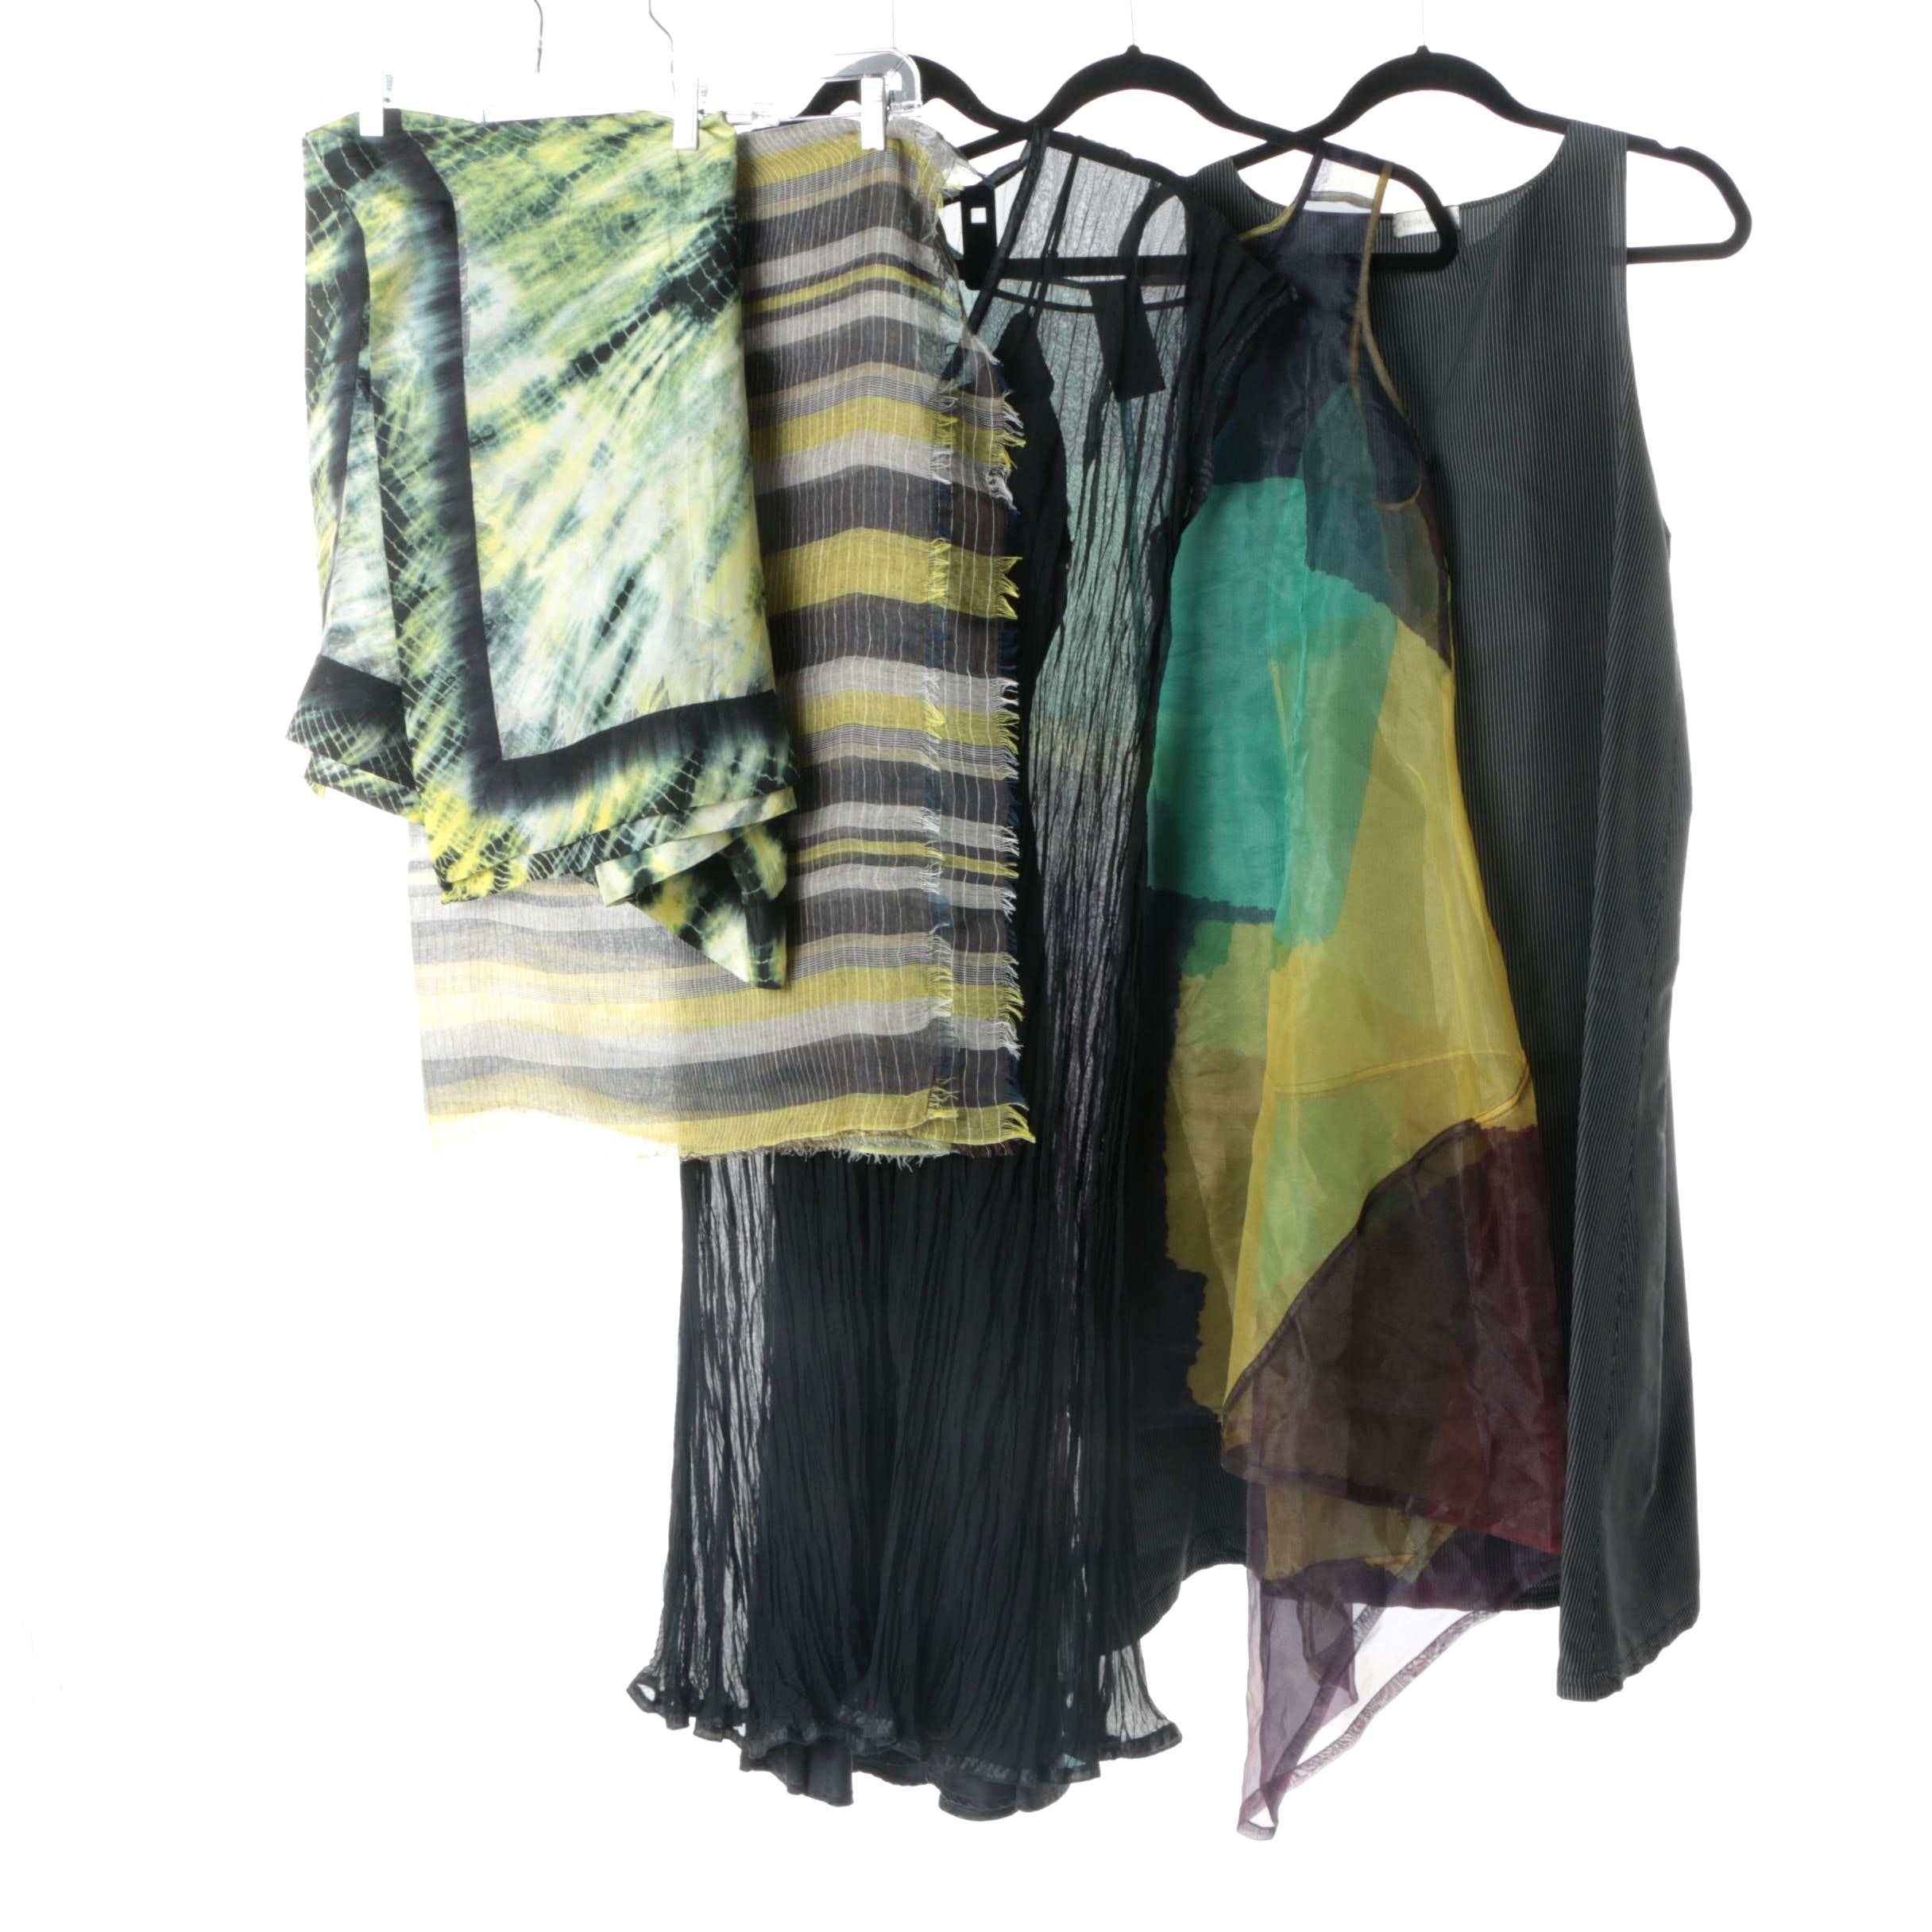 Women's Dresses and Wraps Including Krista Larson and Silk